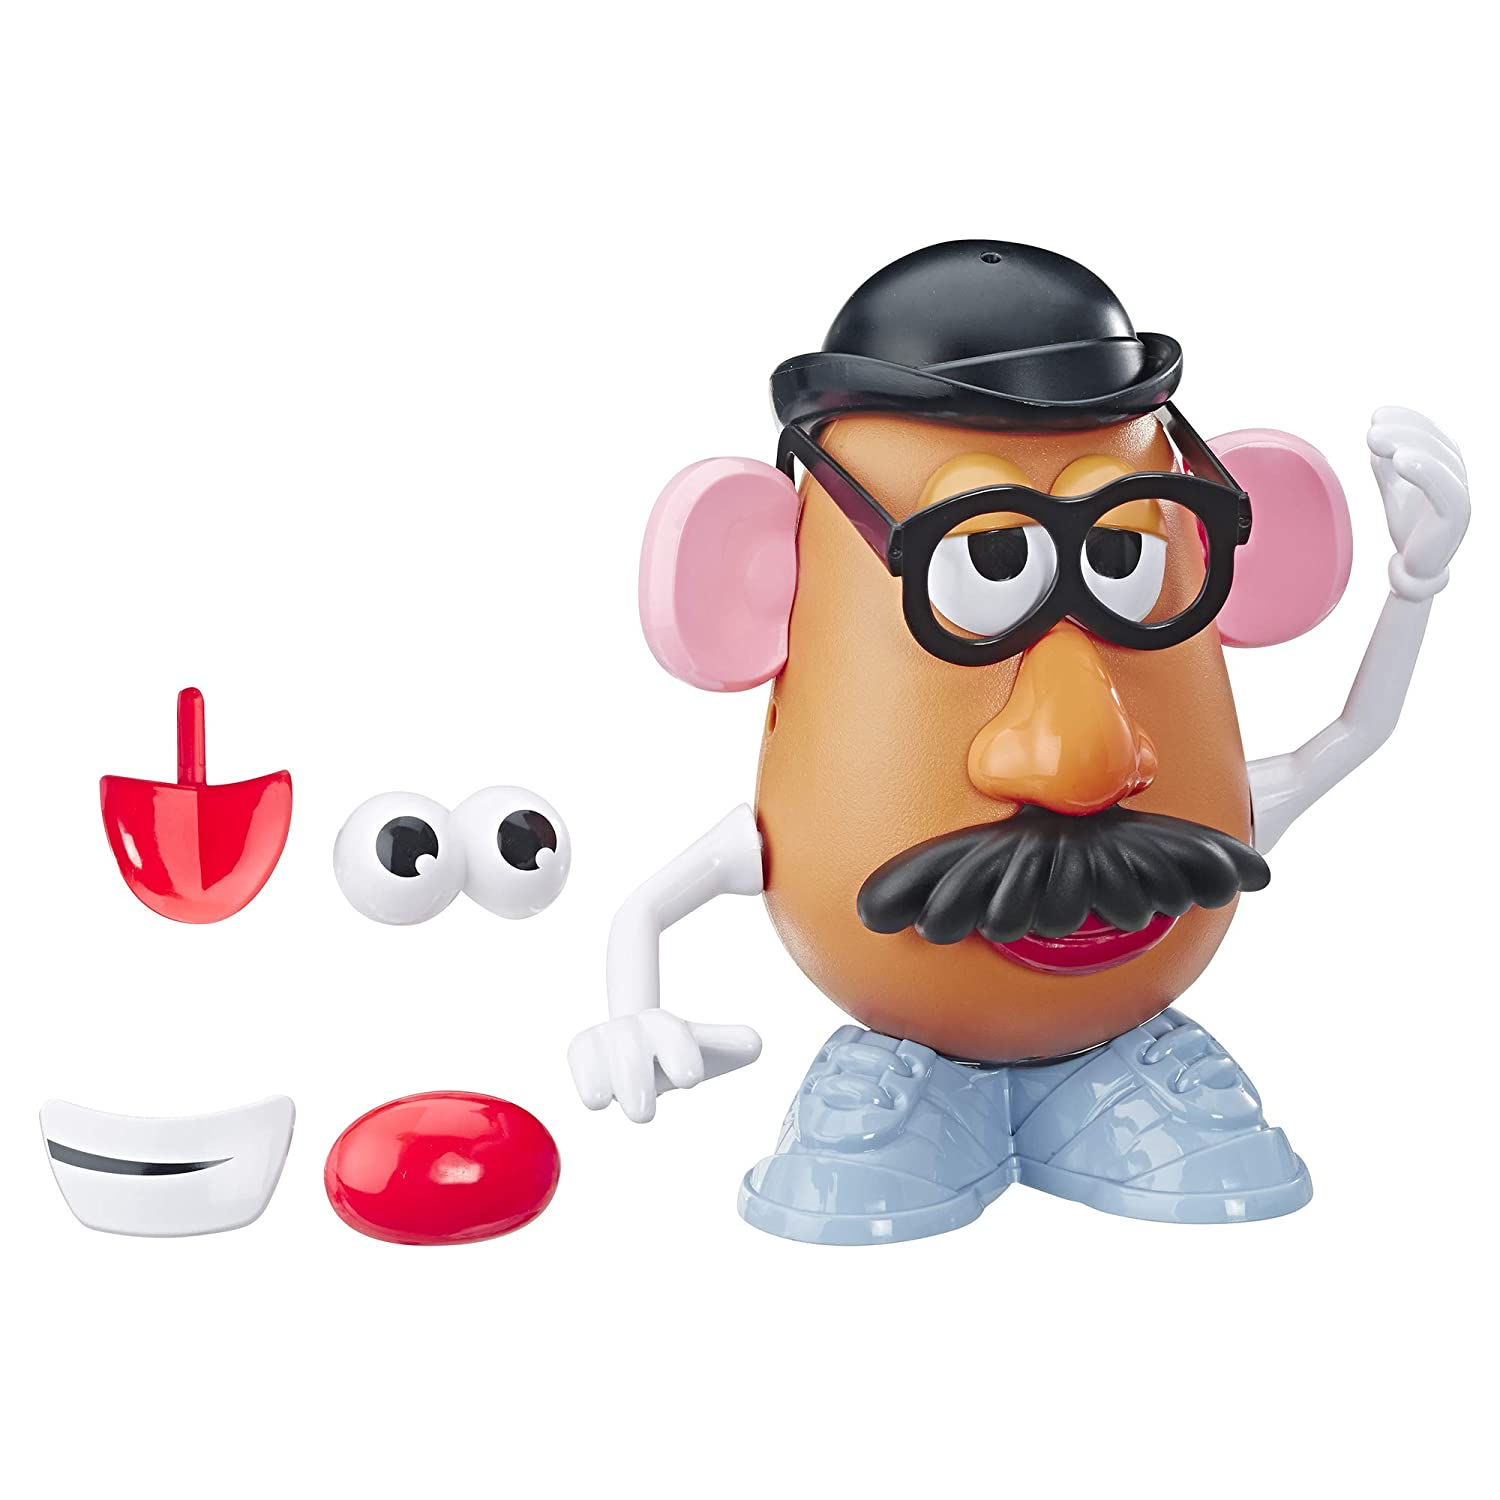 Mr. Potato Head Disney Pixar Toy Story 4 Classic Mr. Potato Head Figure Toy for Kids Ages 2 and Up